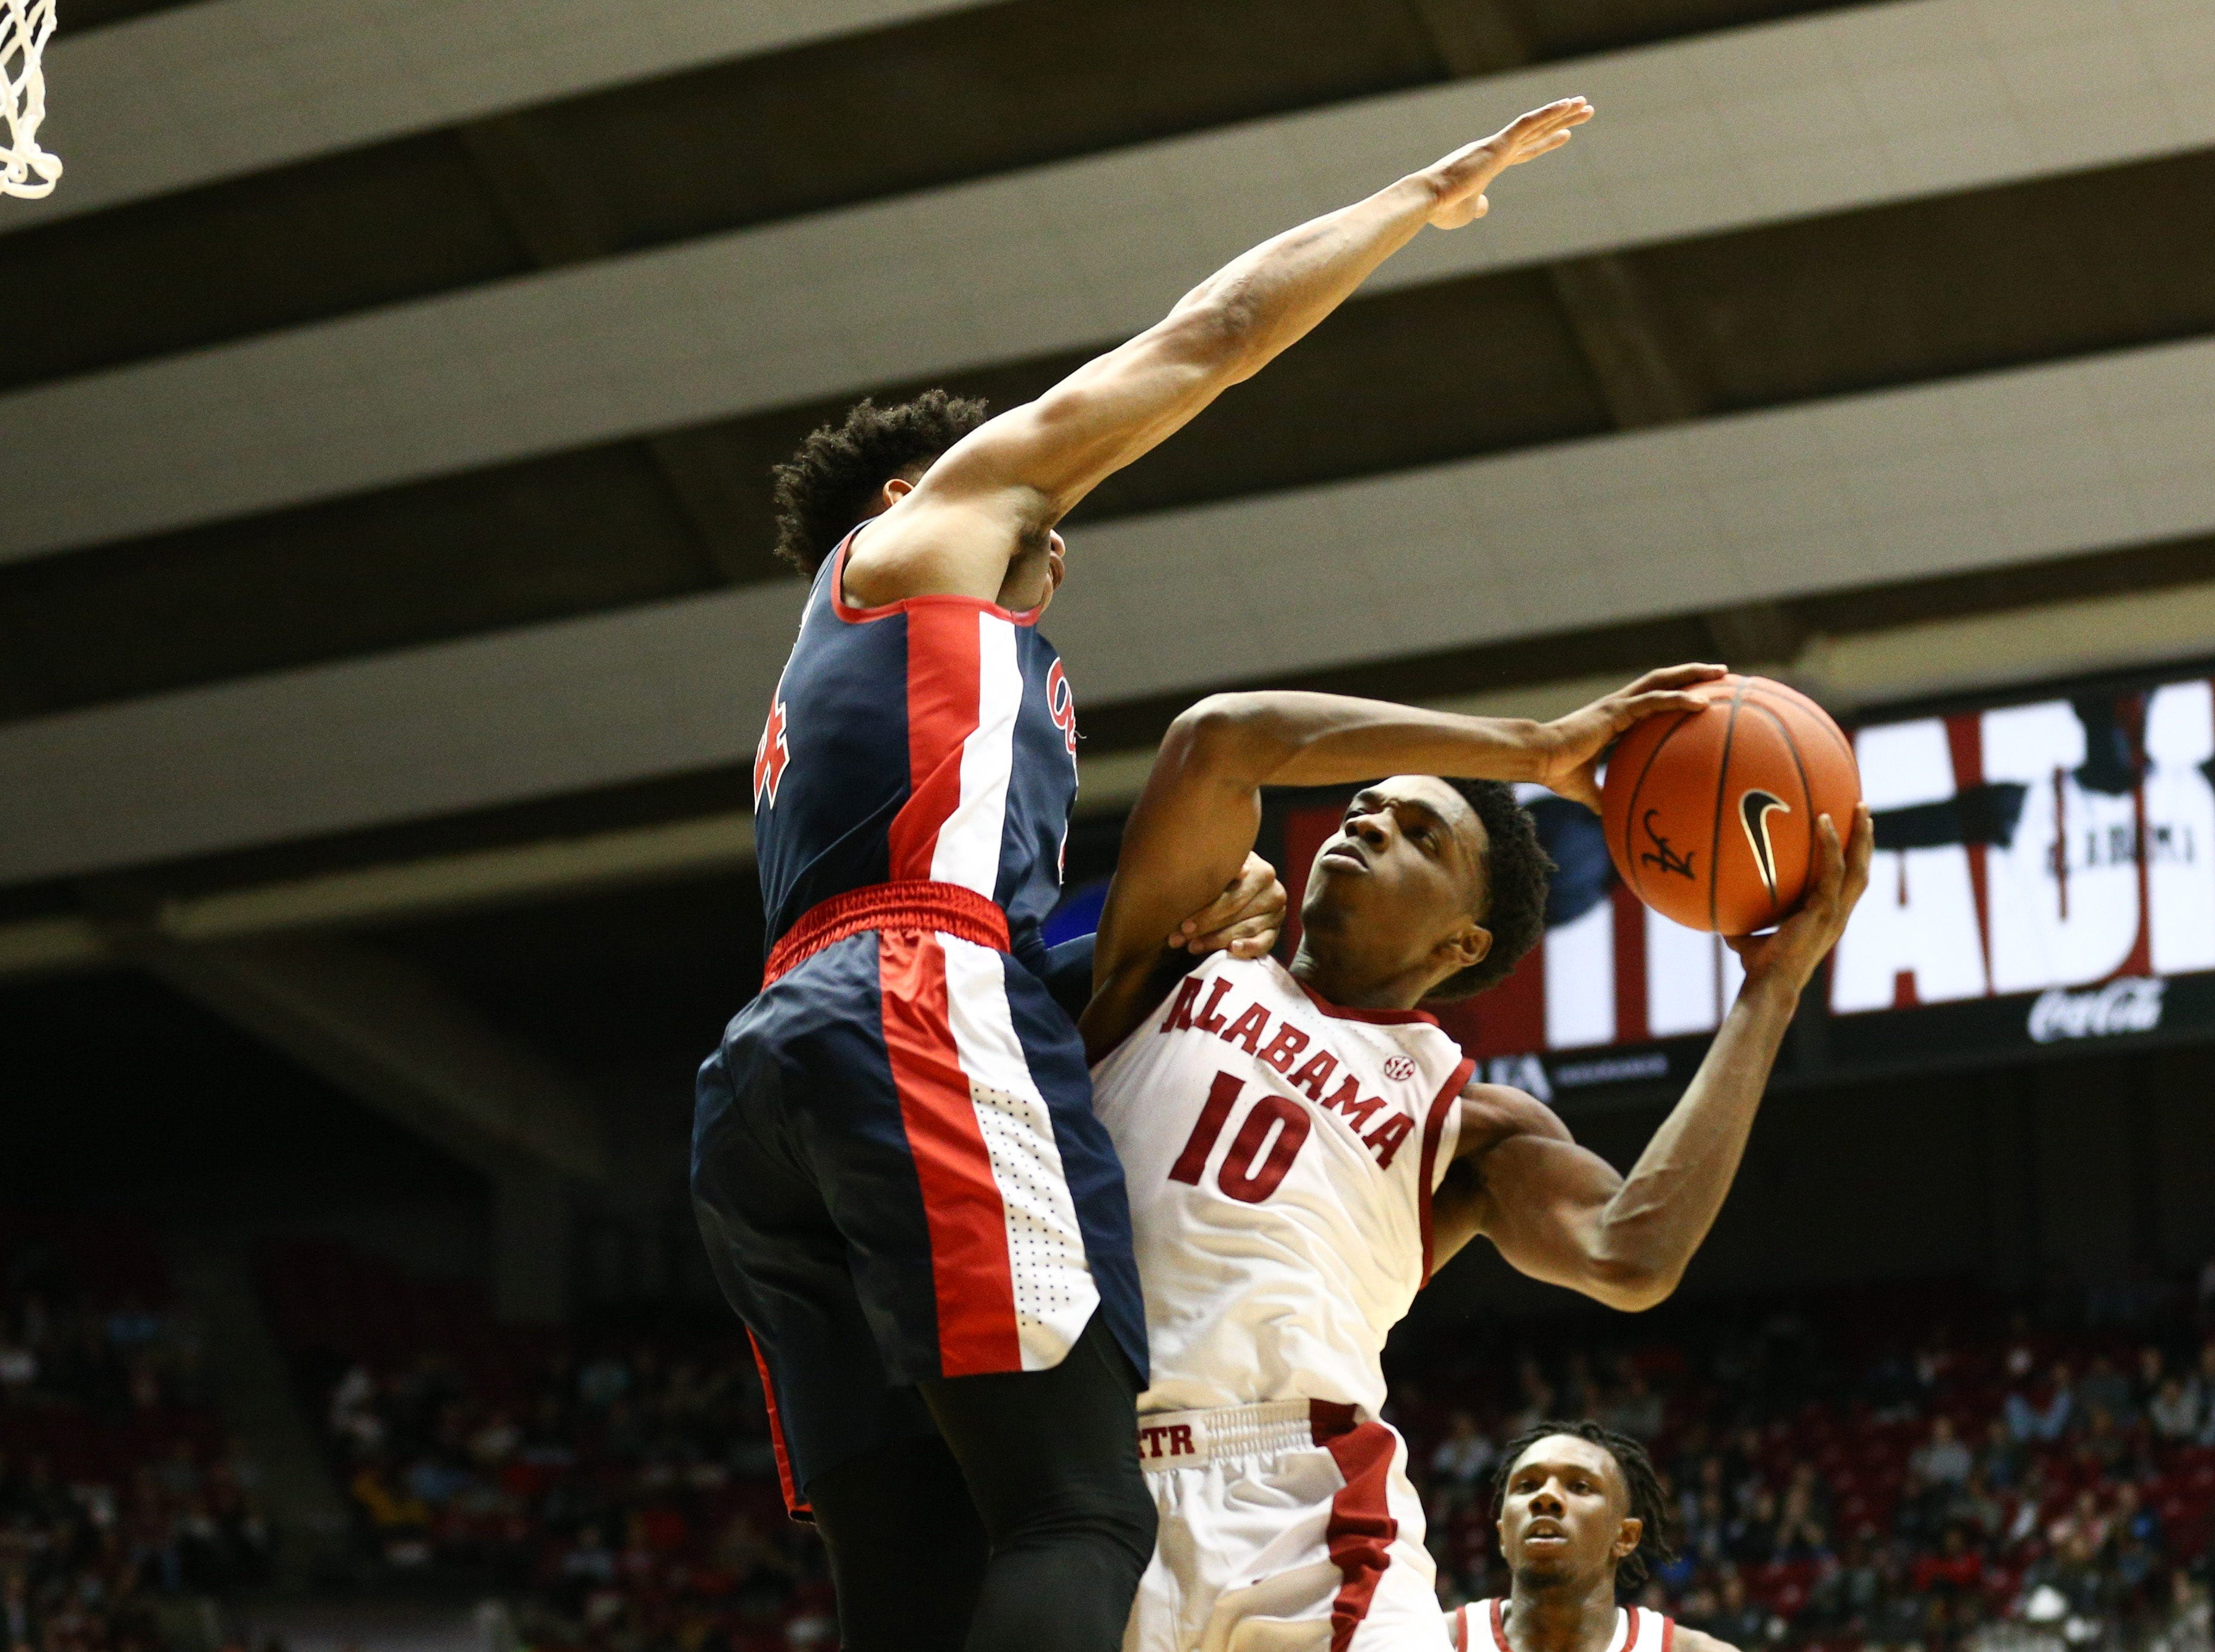 Jan 22, 2019; Tuscaloosa, AL, USA; Alabama Crimson Tide guard Herbert Jones (10) drives to the basket against Mississippi Rebels guard Breein Tyree (4) during the second half at Coleman Coliseum. Mandatory Credit: Marvin Gentry-USA TODAY Sports